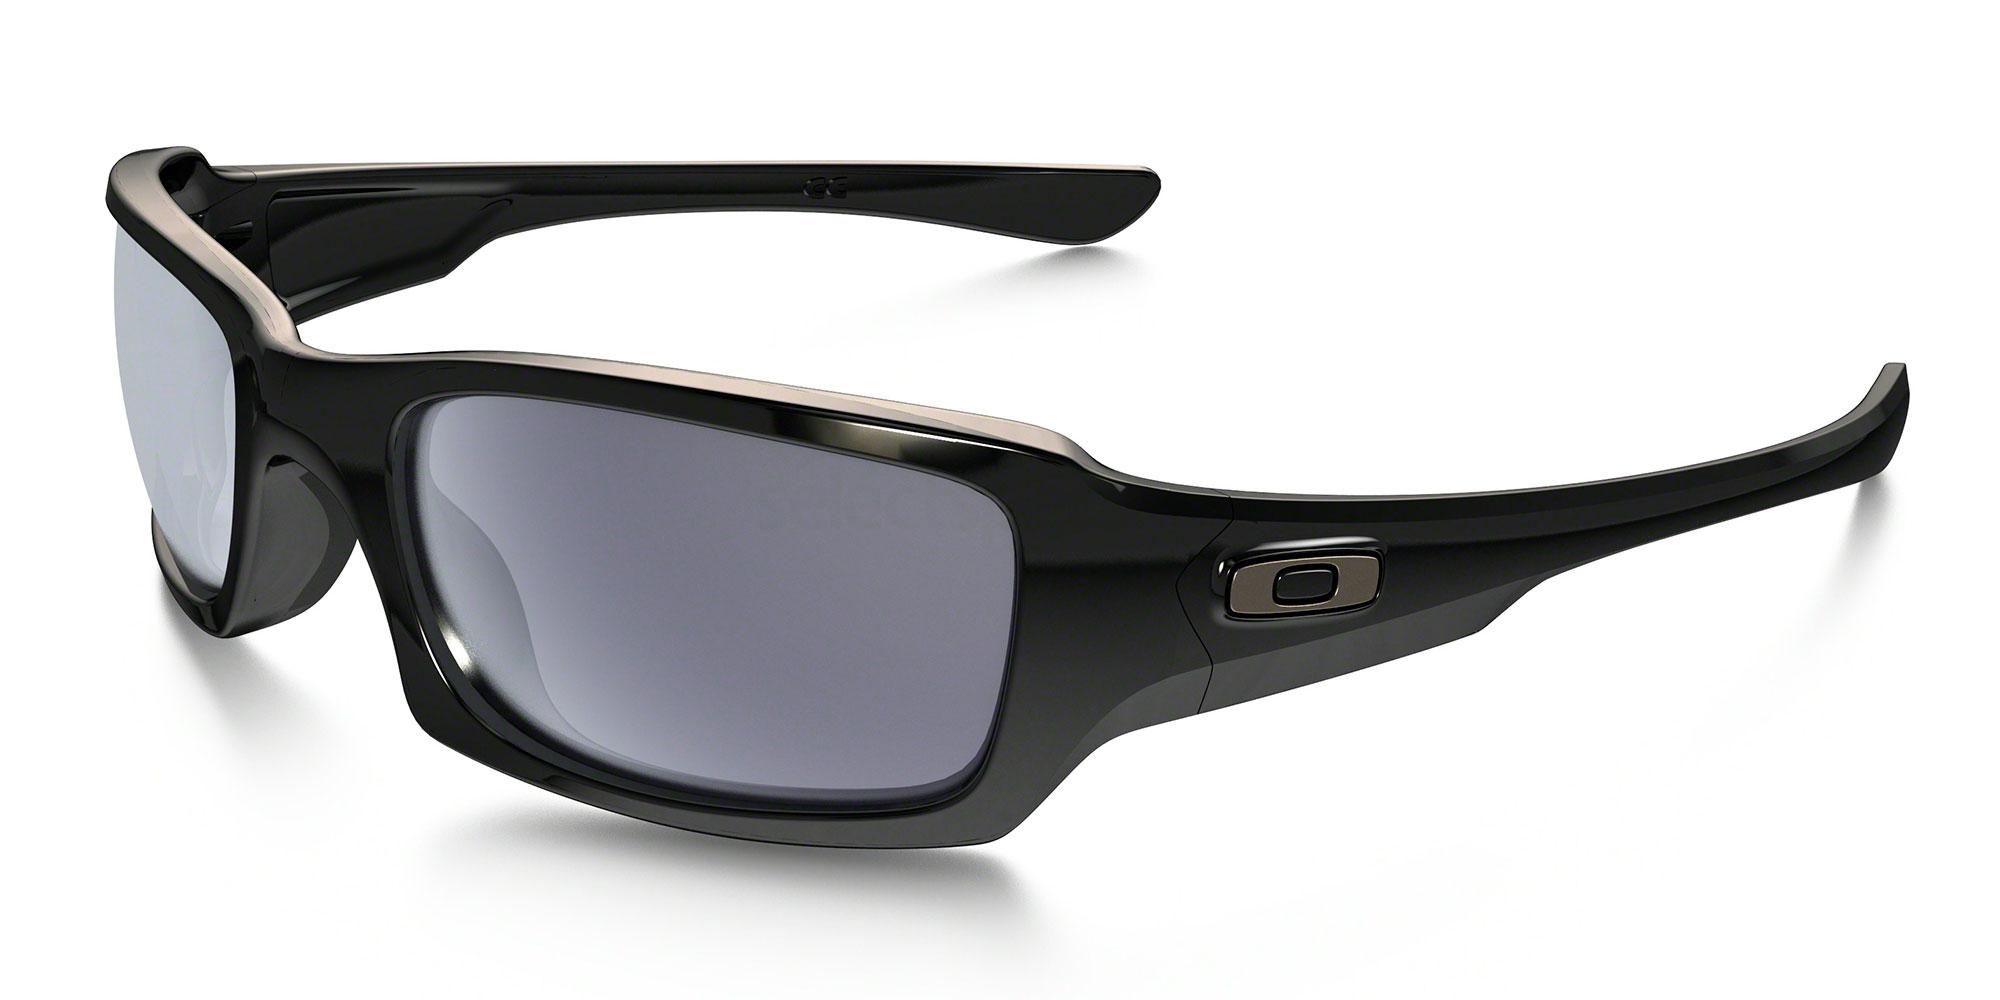 Oakley_OO9238_Fives_squared_sunglasses